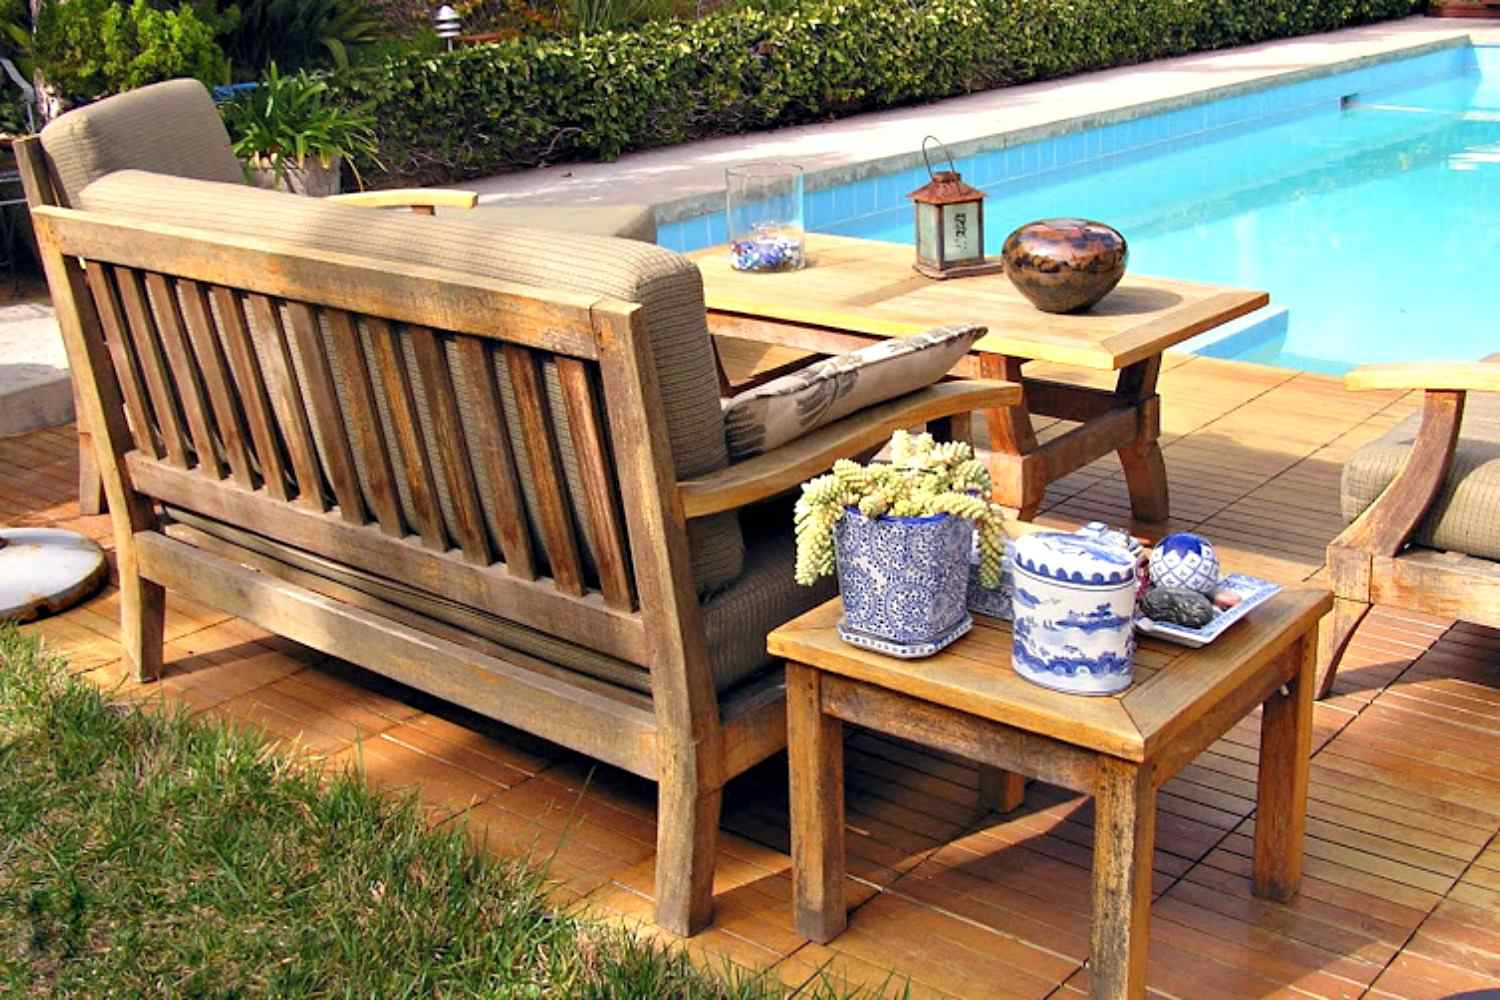 Patio Furniture: Types and Materials - Garden Furniture Guide